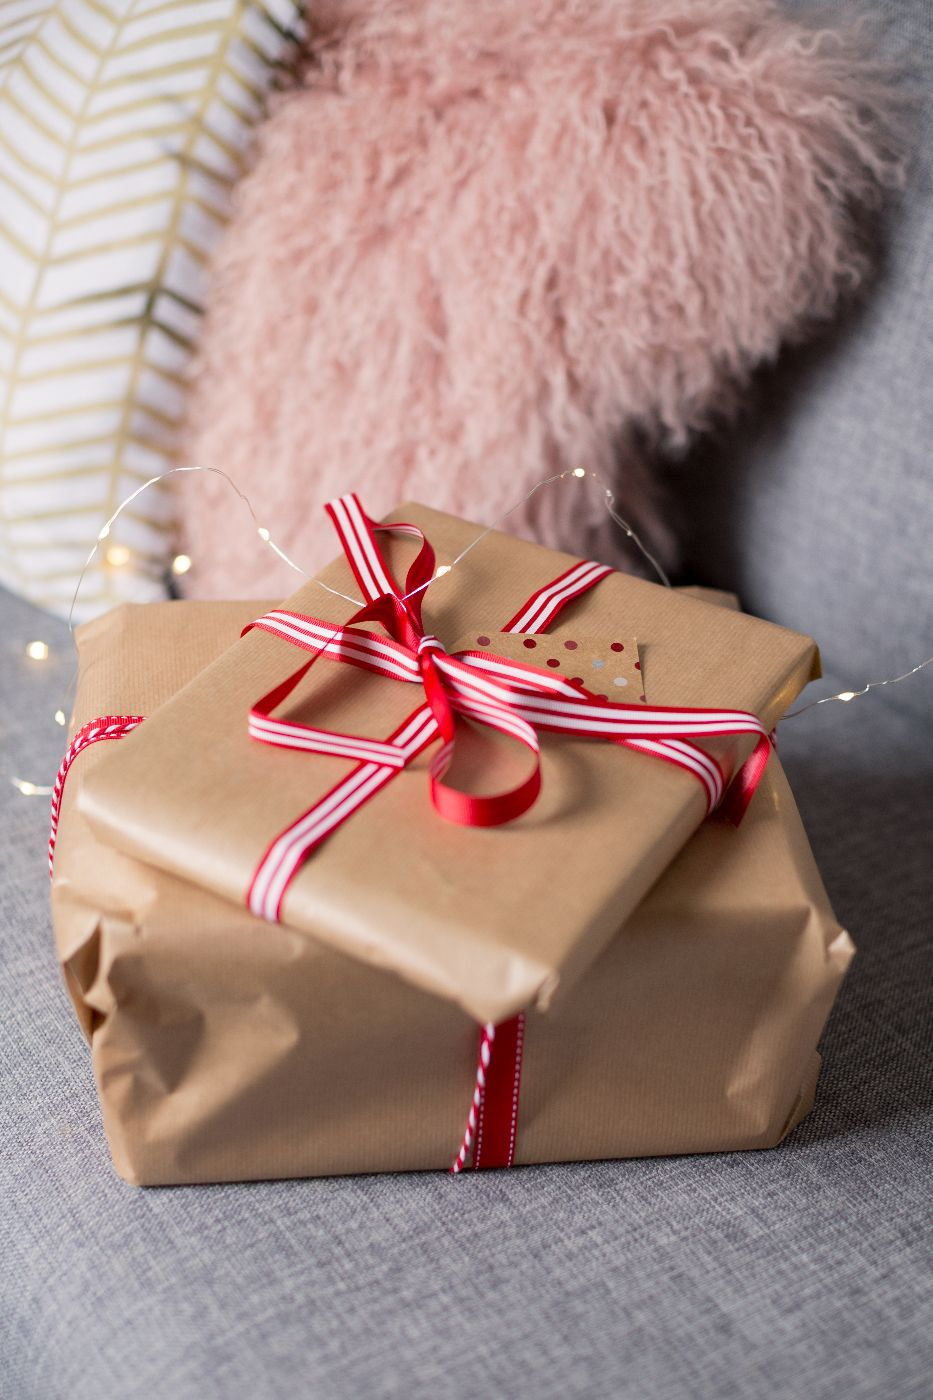 theannaedit-christmas-gifts-wrapping-gift-ideas-november-2017-1